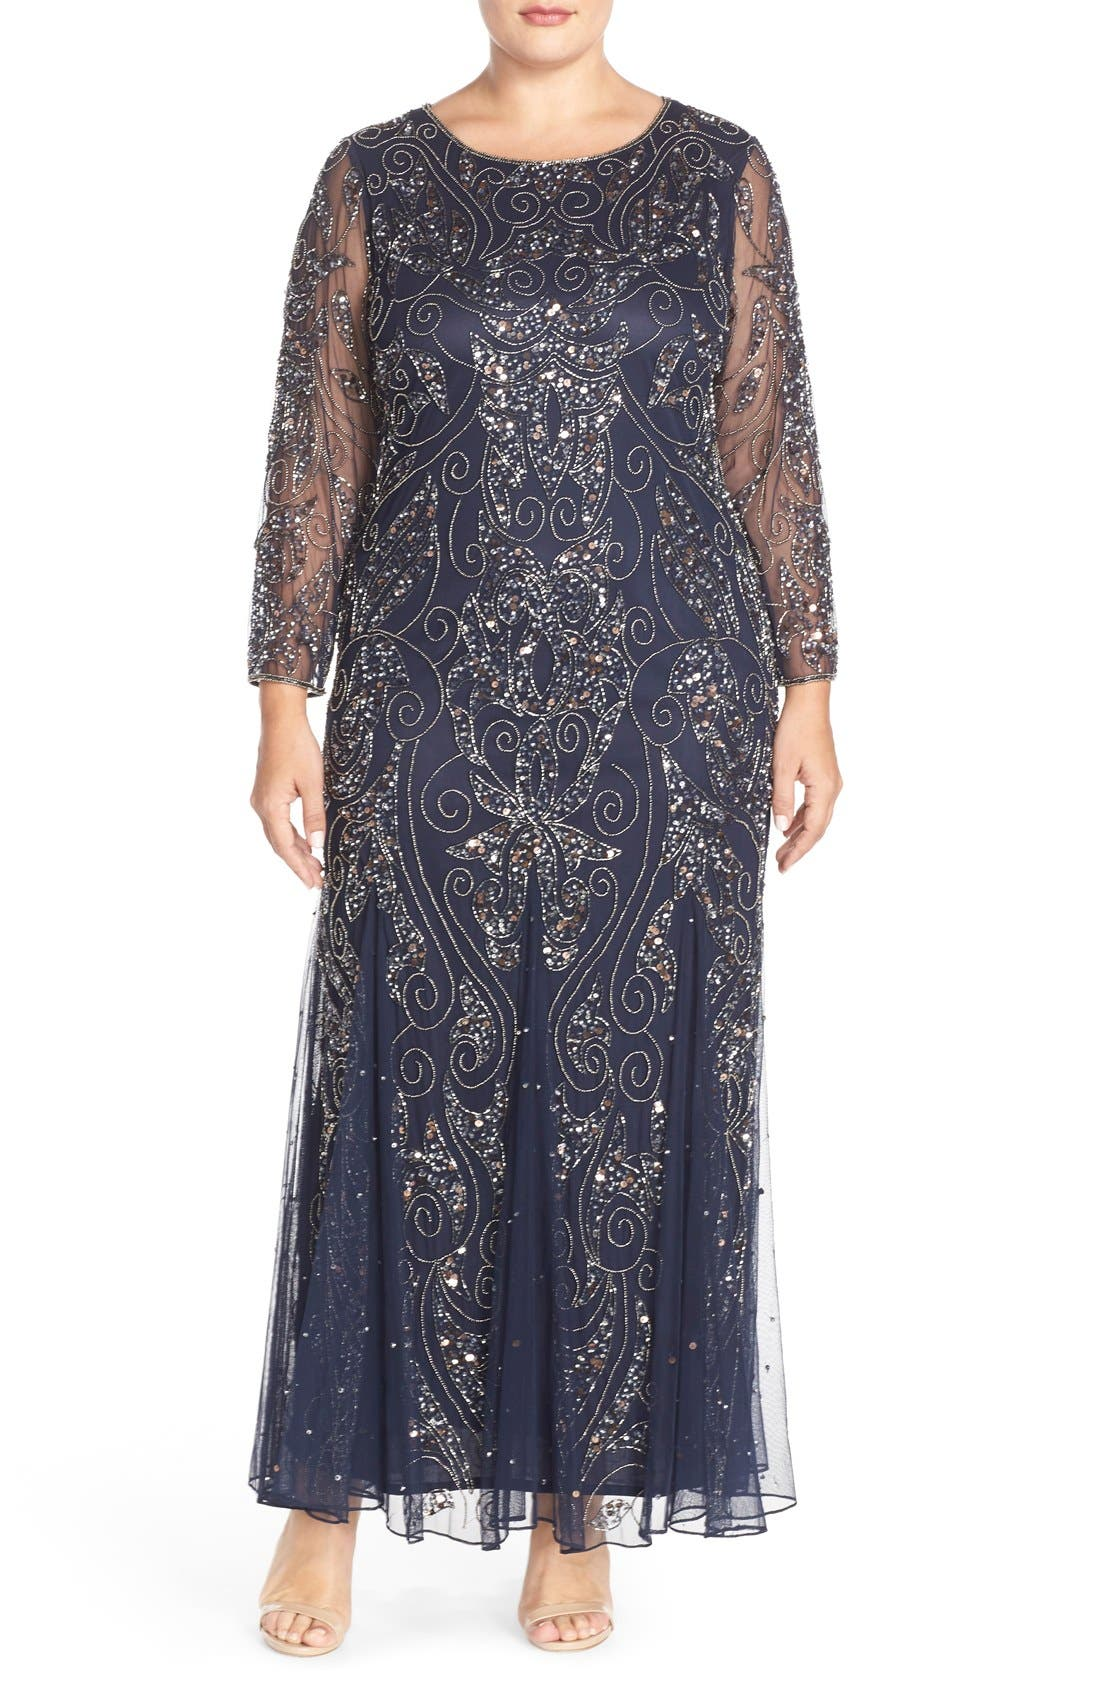 Vintage Evening Dresses and Formal Evening Gowns Plus Size Womens Pisarro Nights Embellished Three Quarter Sleeve Gown Size 14W - Blue $238.00 AT vintagedancer.com